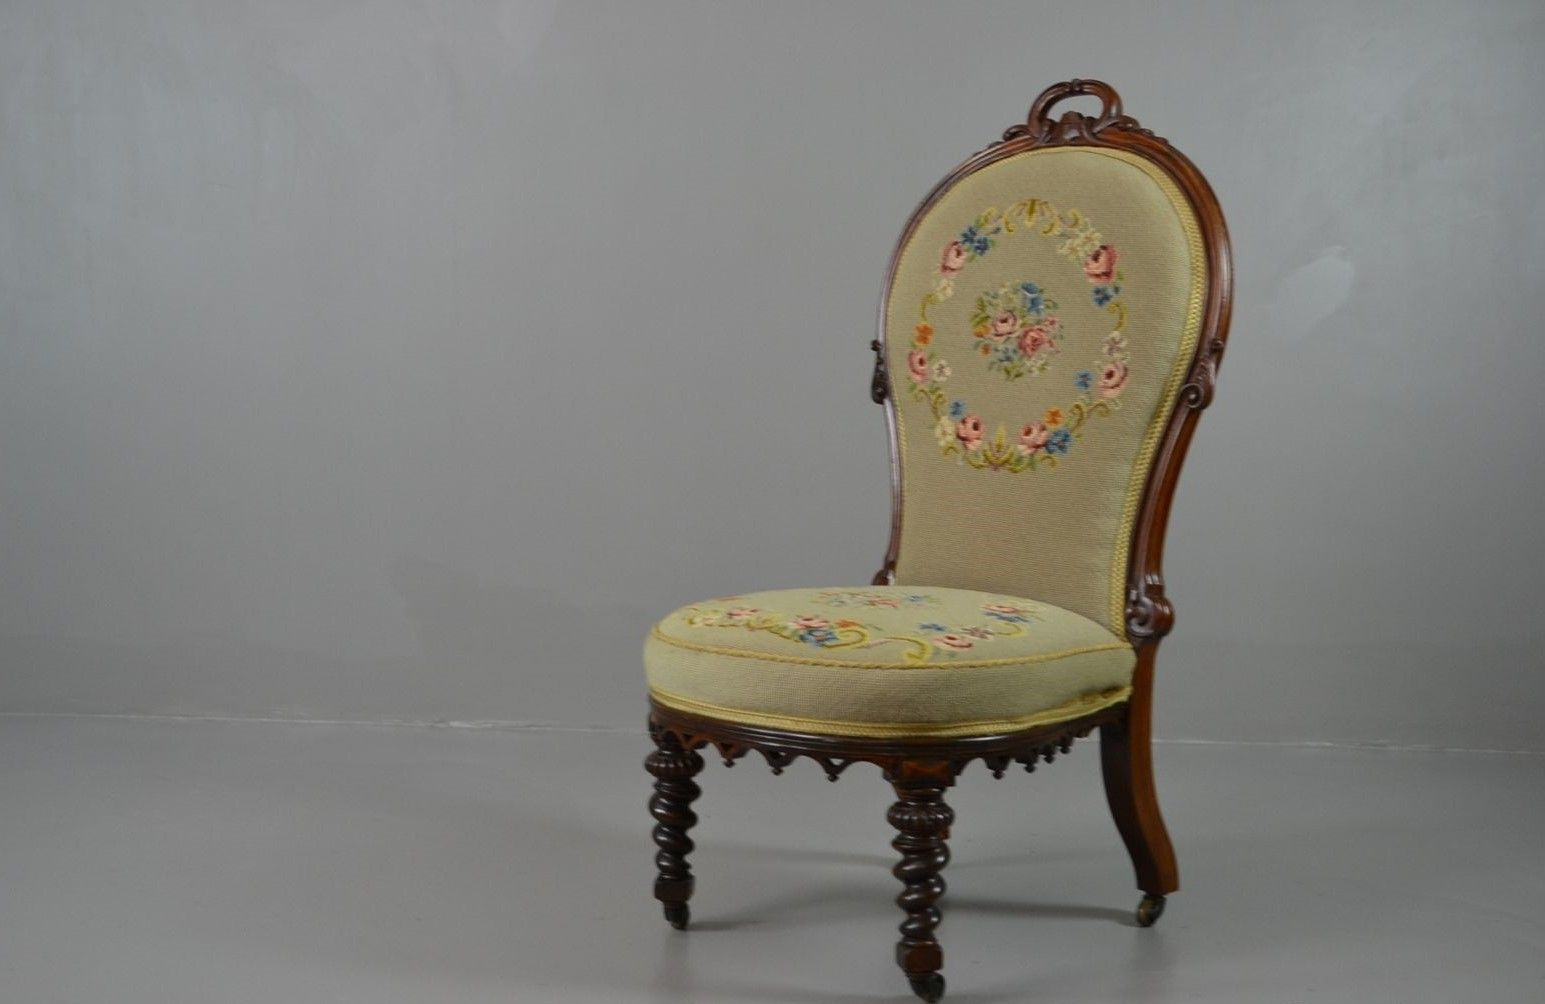 victorian rosewood floral needlework nursing chair - Nursing Chair